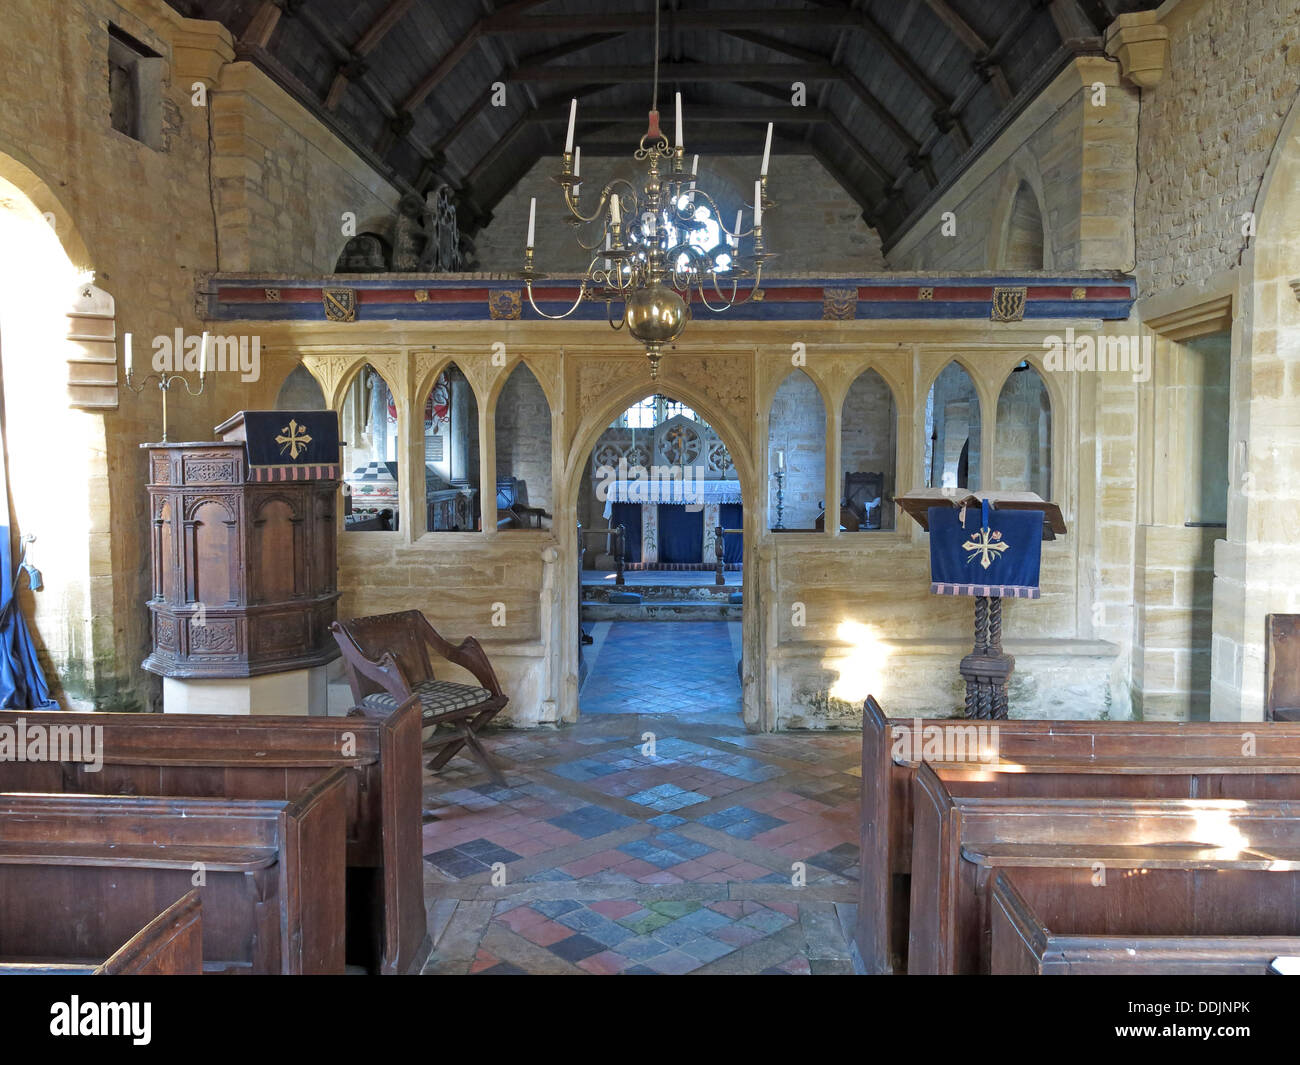 Chapel at Brympton d'Evercy, Yeovil, Somerset, England, UK - Stock Image